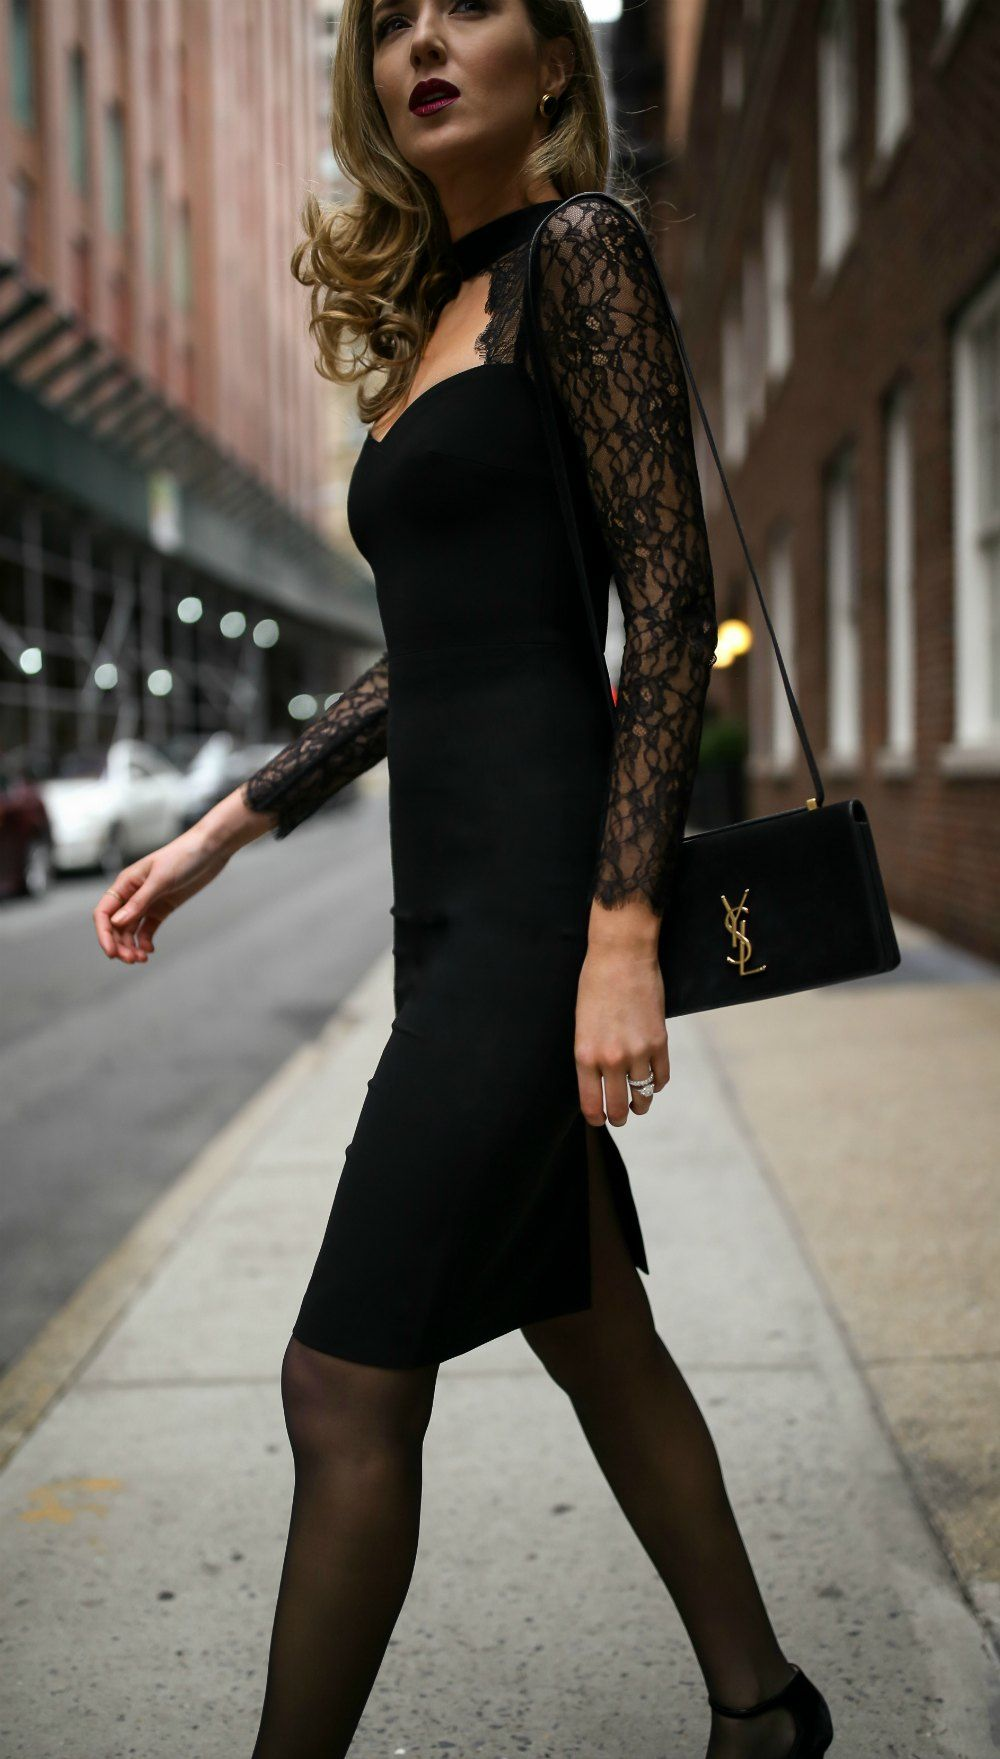 30 DRESSES IN 30 DAYS: Date Night // Black lace cut-out sheath